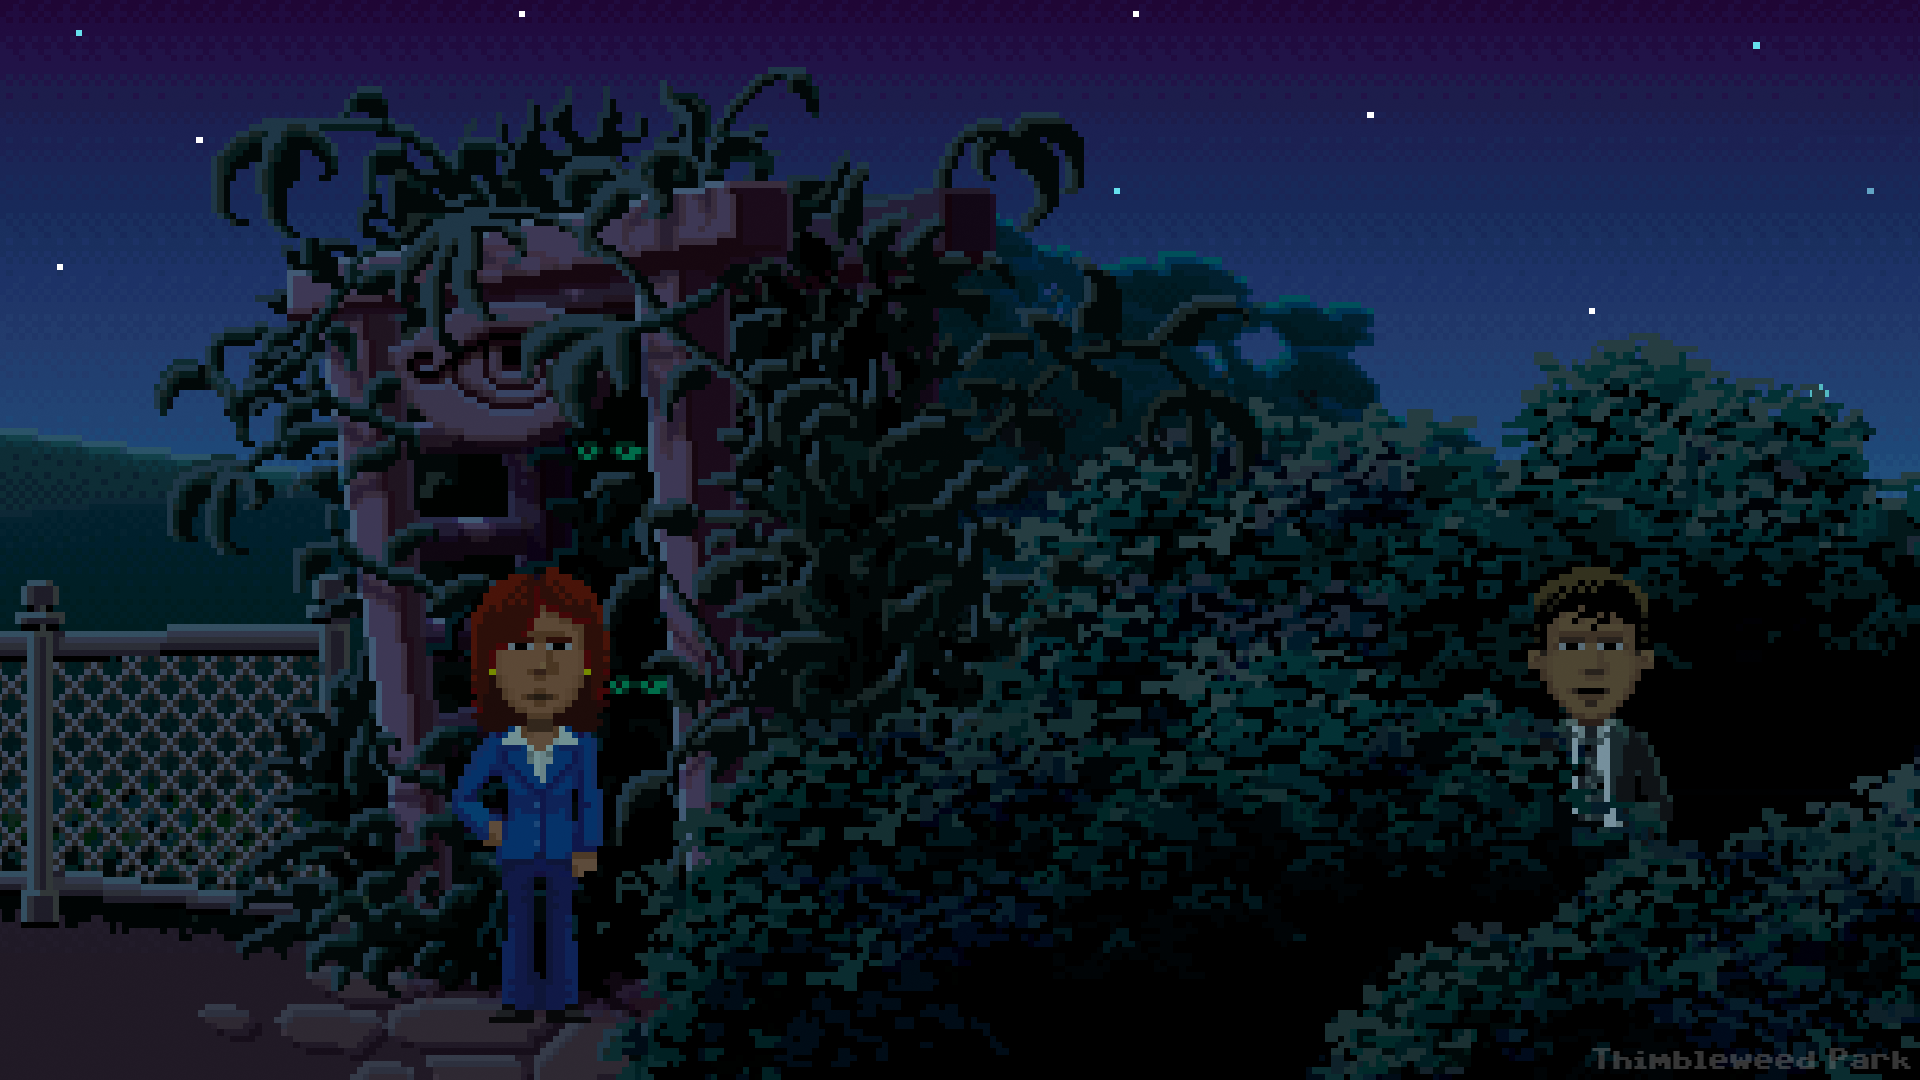 thimbleweed park blog no podcast for you desktop computer for home office desktop computer for home office